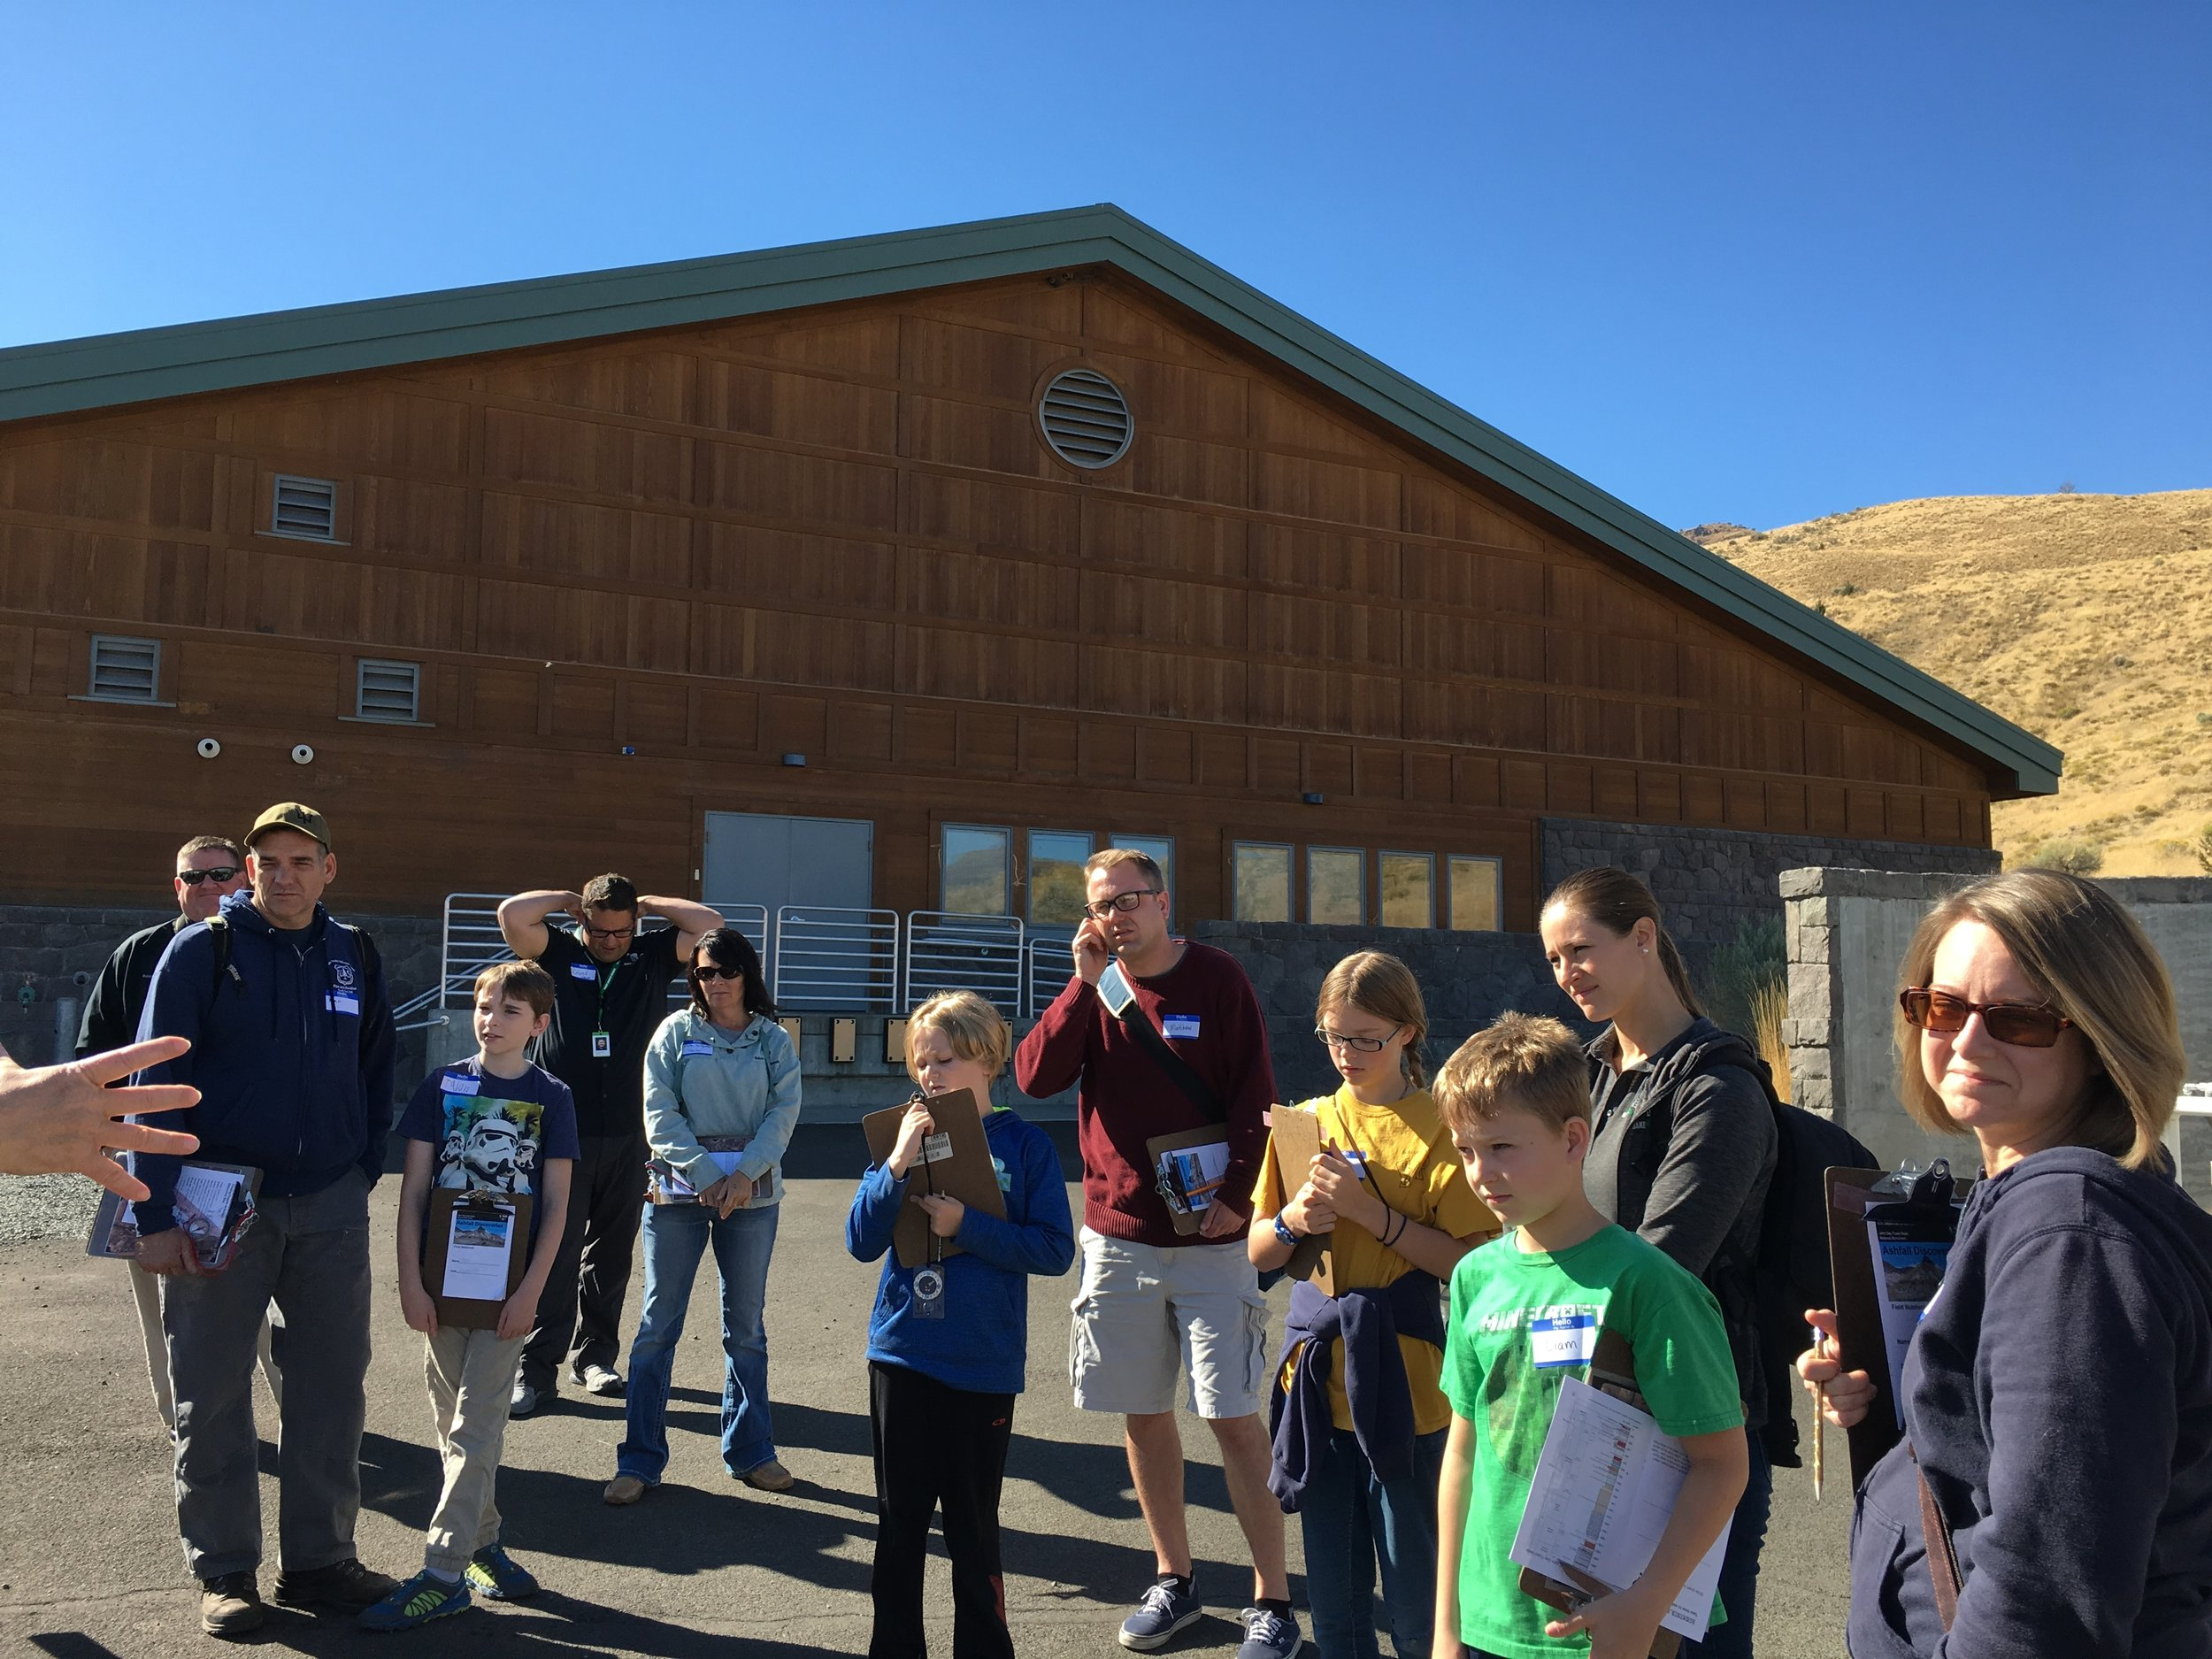 The John Day Fossil Beds Visitor's Center